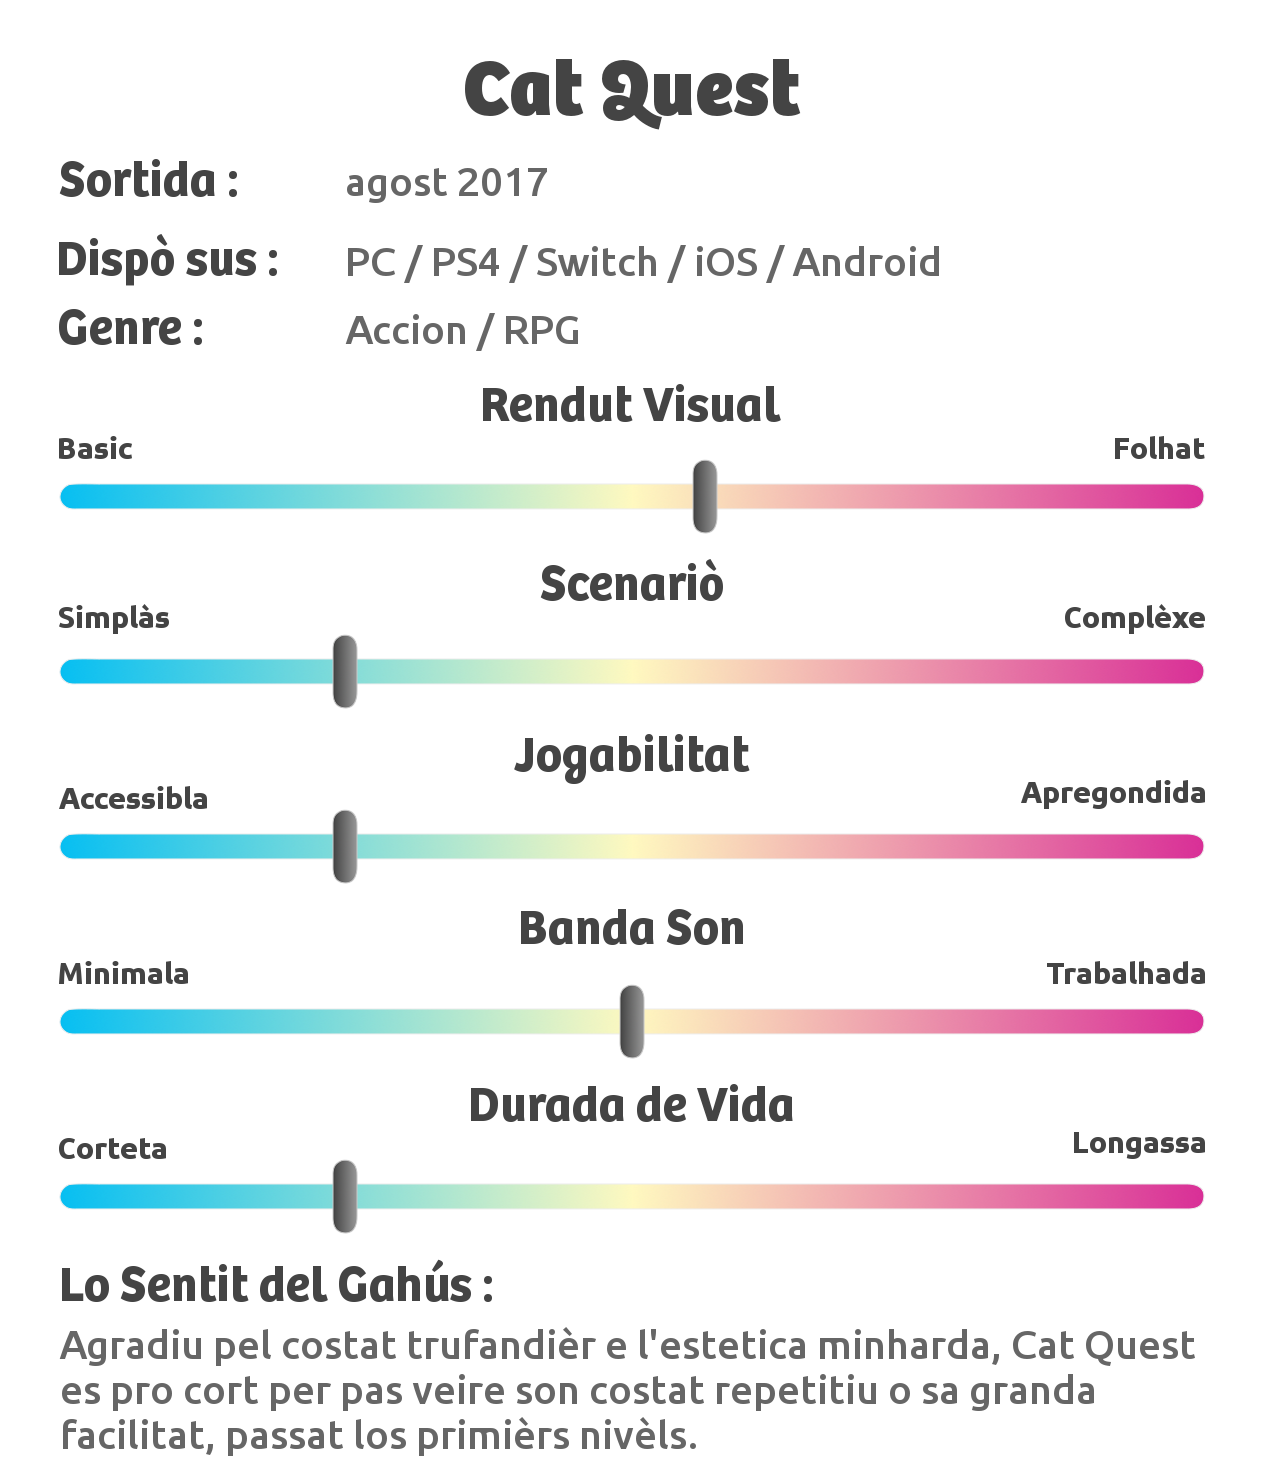 Evaluacion Cat Quest